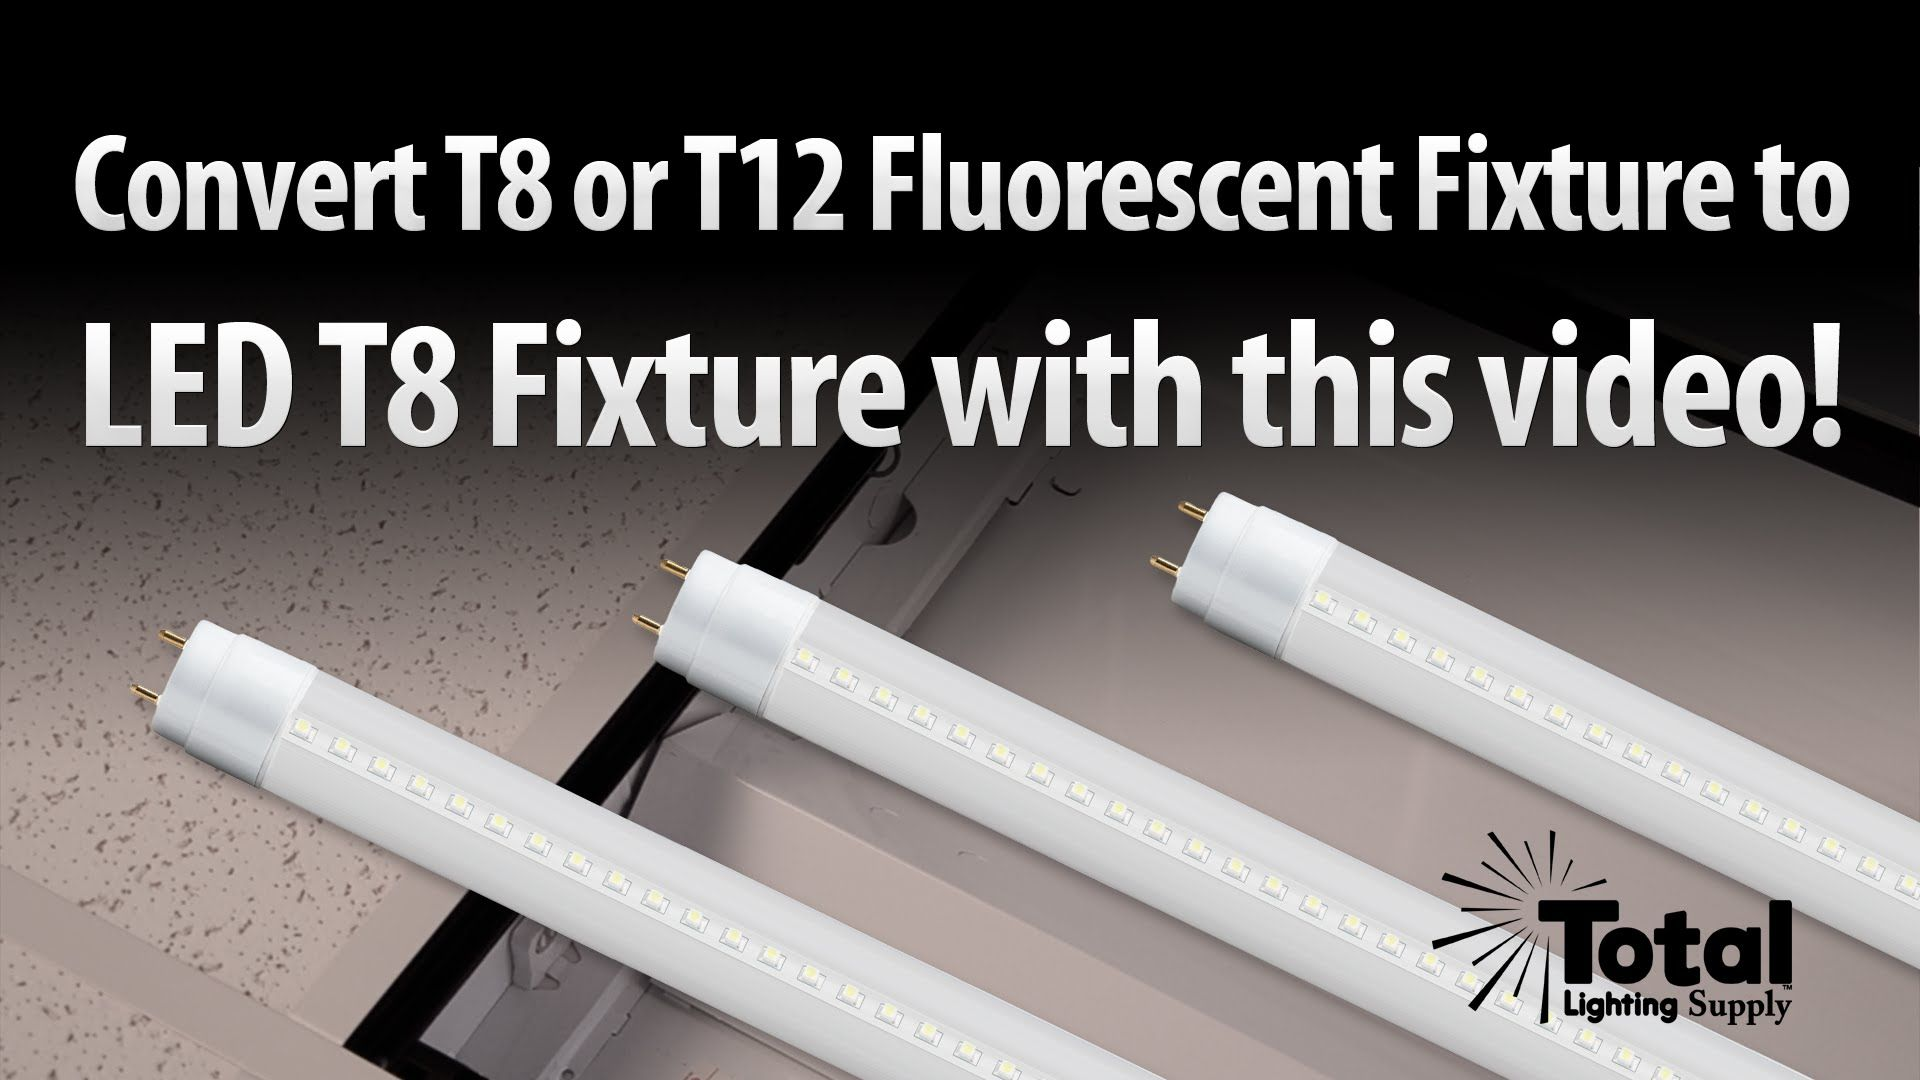 T12 Fluorescent Light Fixtures How To Change Your T12 Or T8 Fluorescent Fixture To Retrofit Led